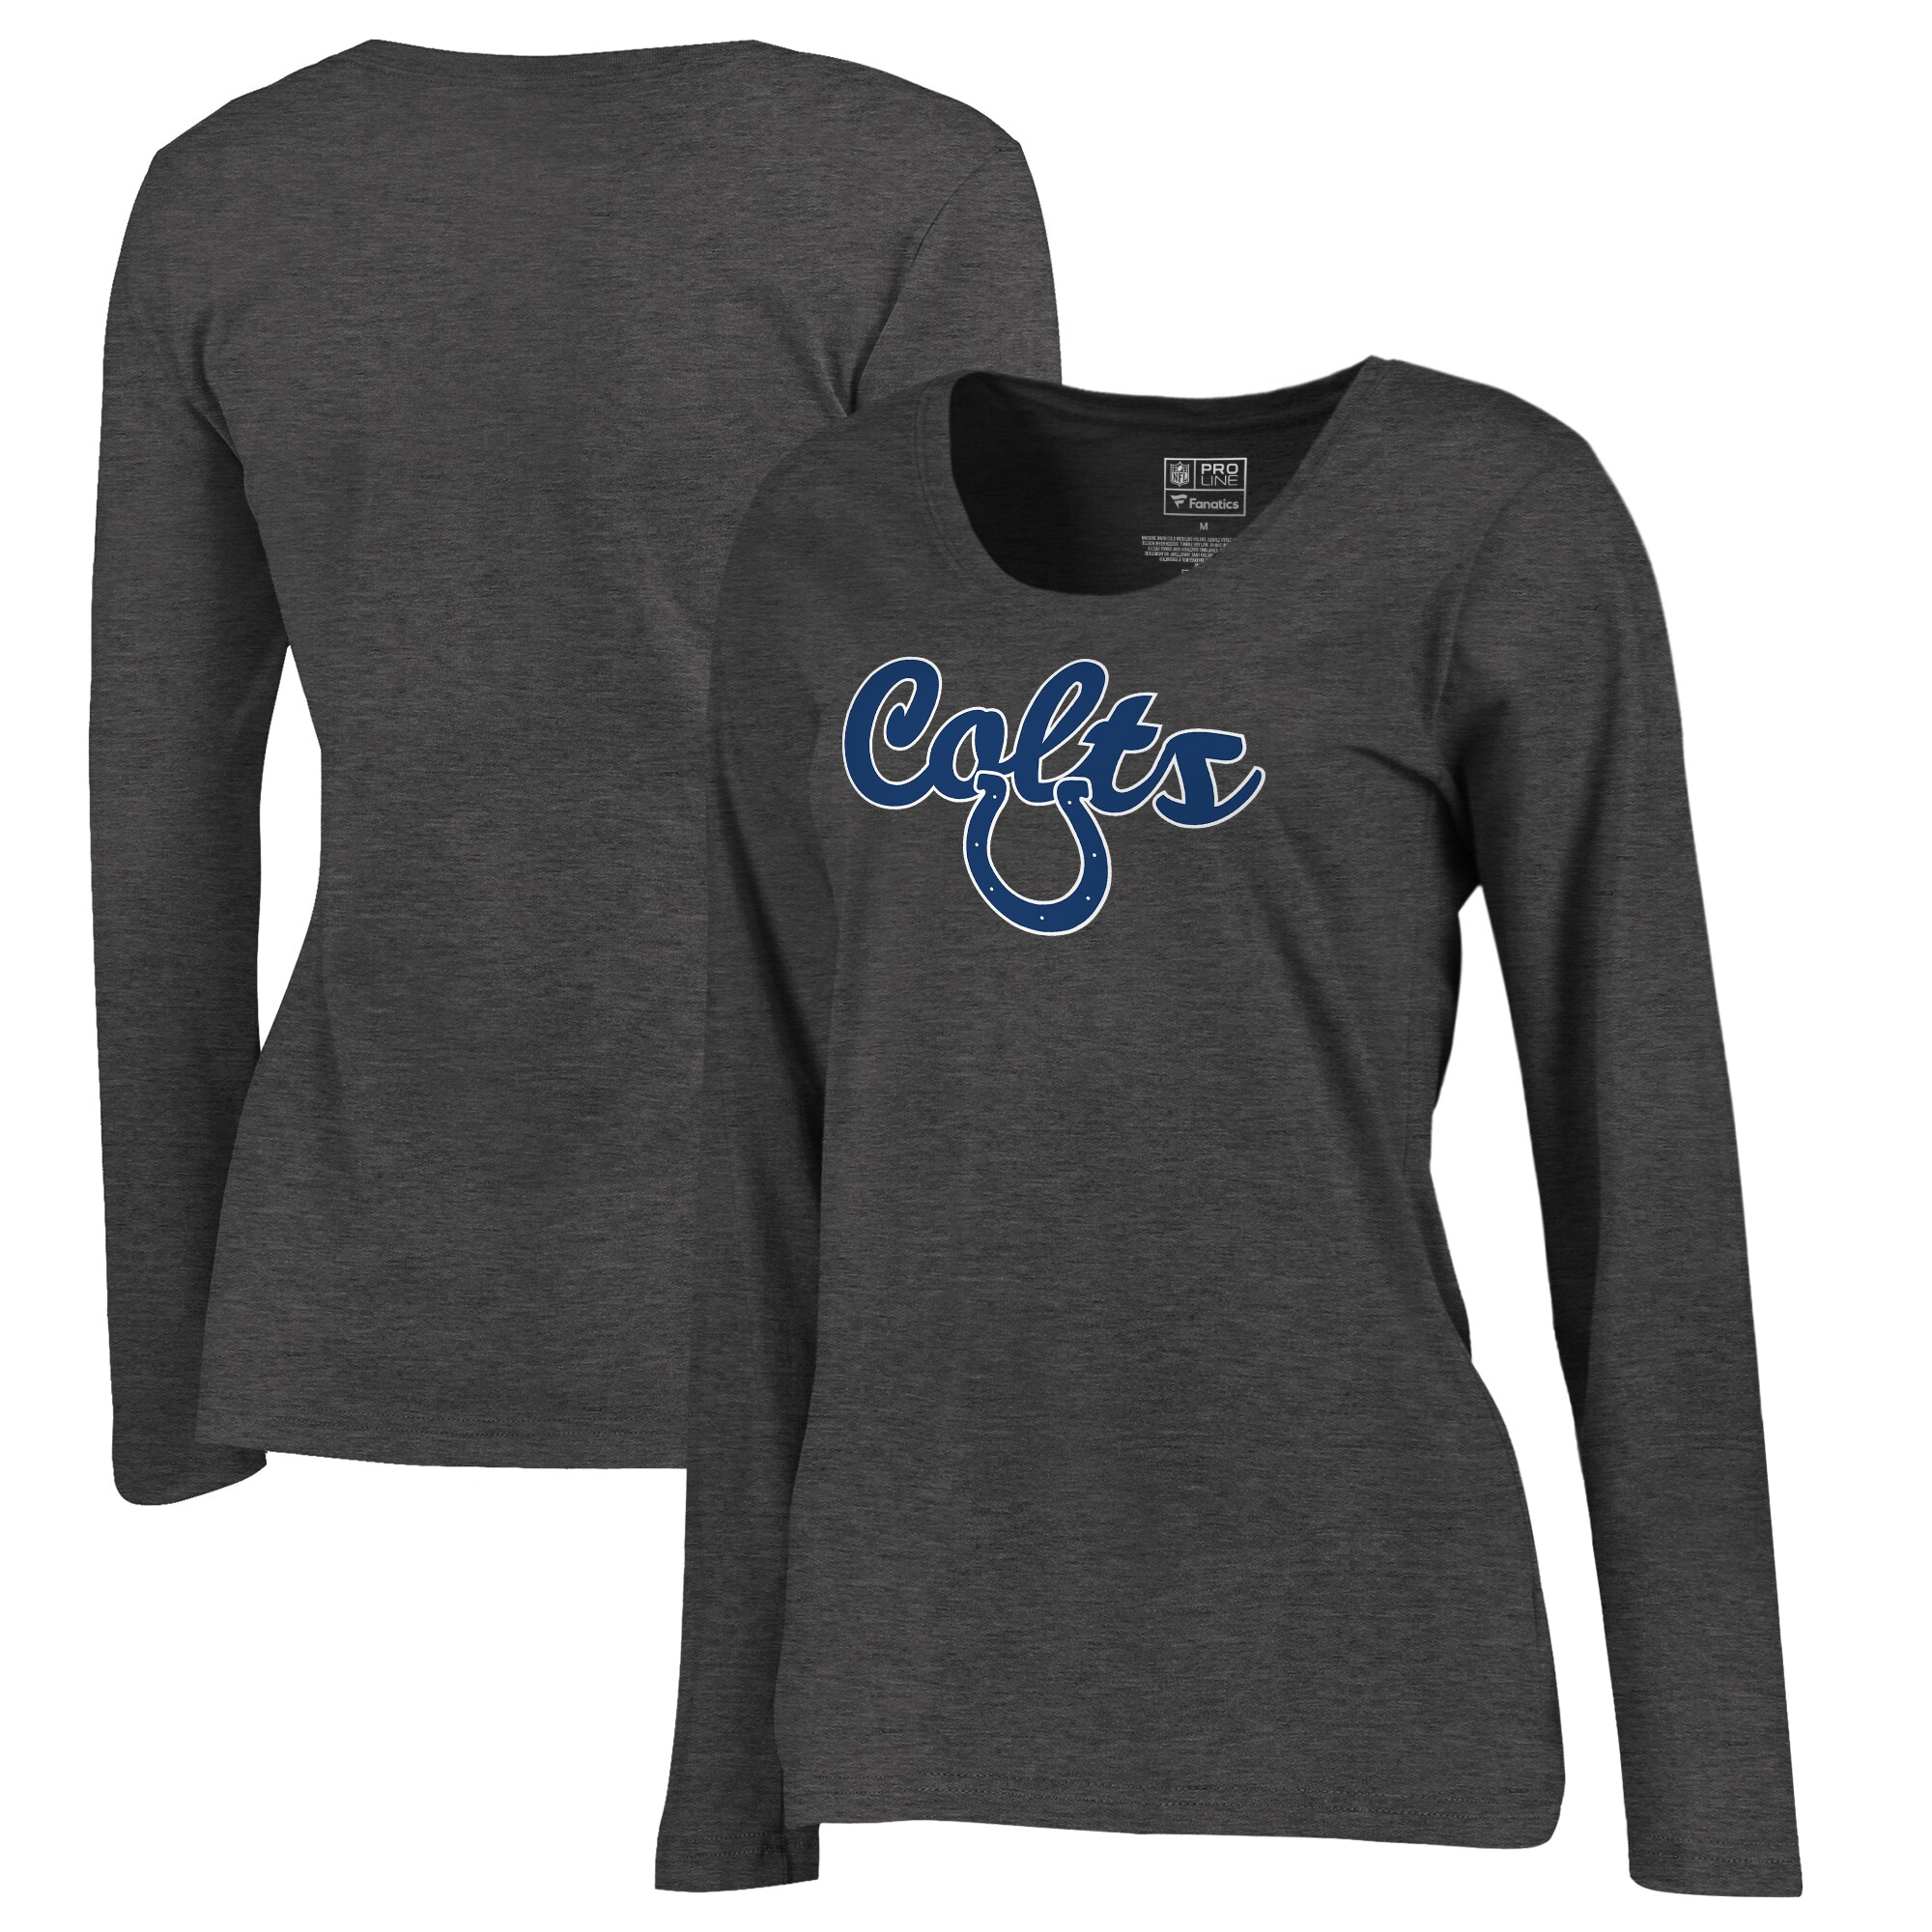 Indianapolis Colts NFL Pro Line by Fanatics Branded Women's Freehand Long Sleeve Plus Size T-Shirt - Dark Heathered Gray